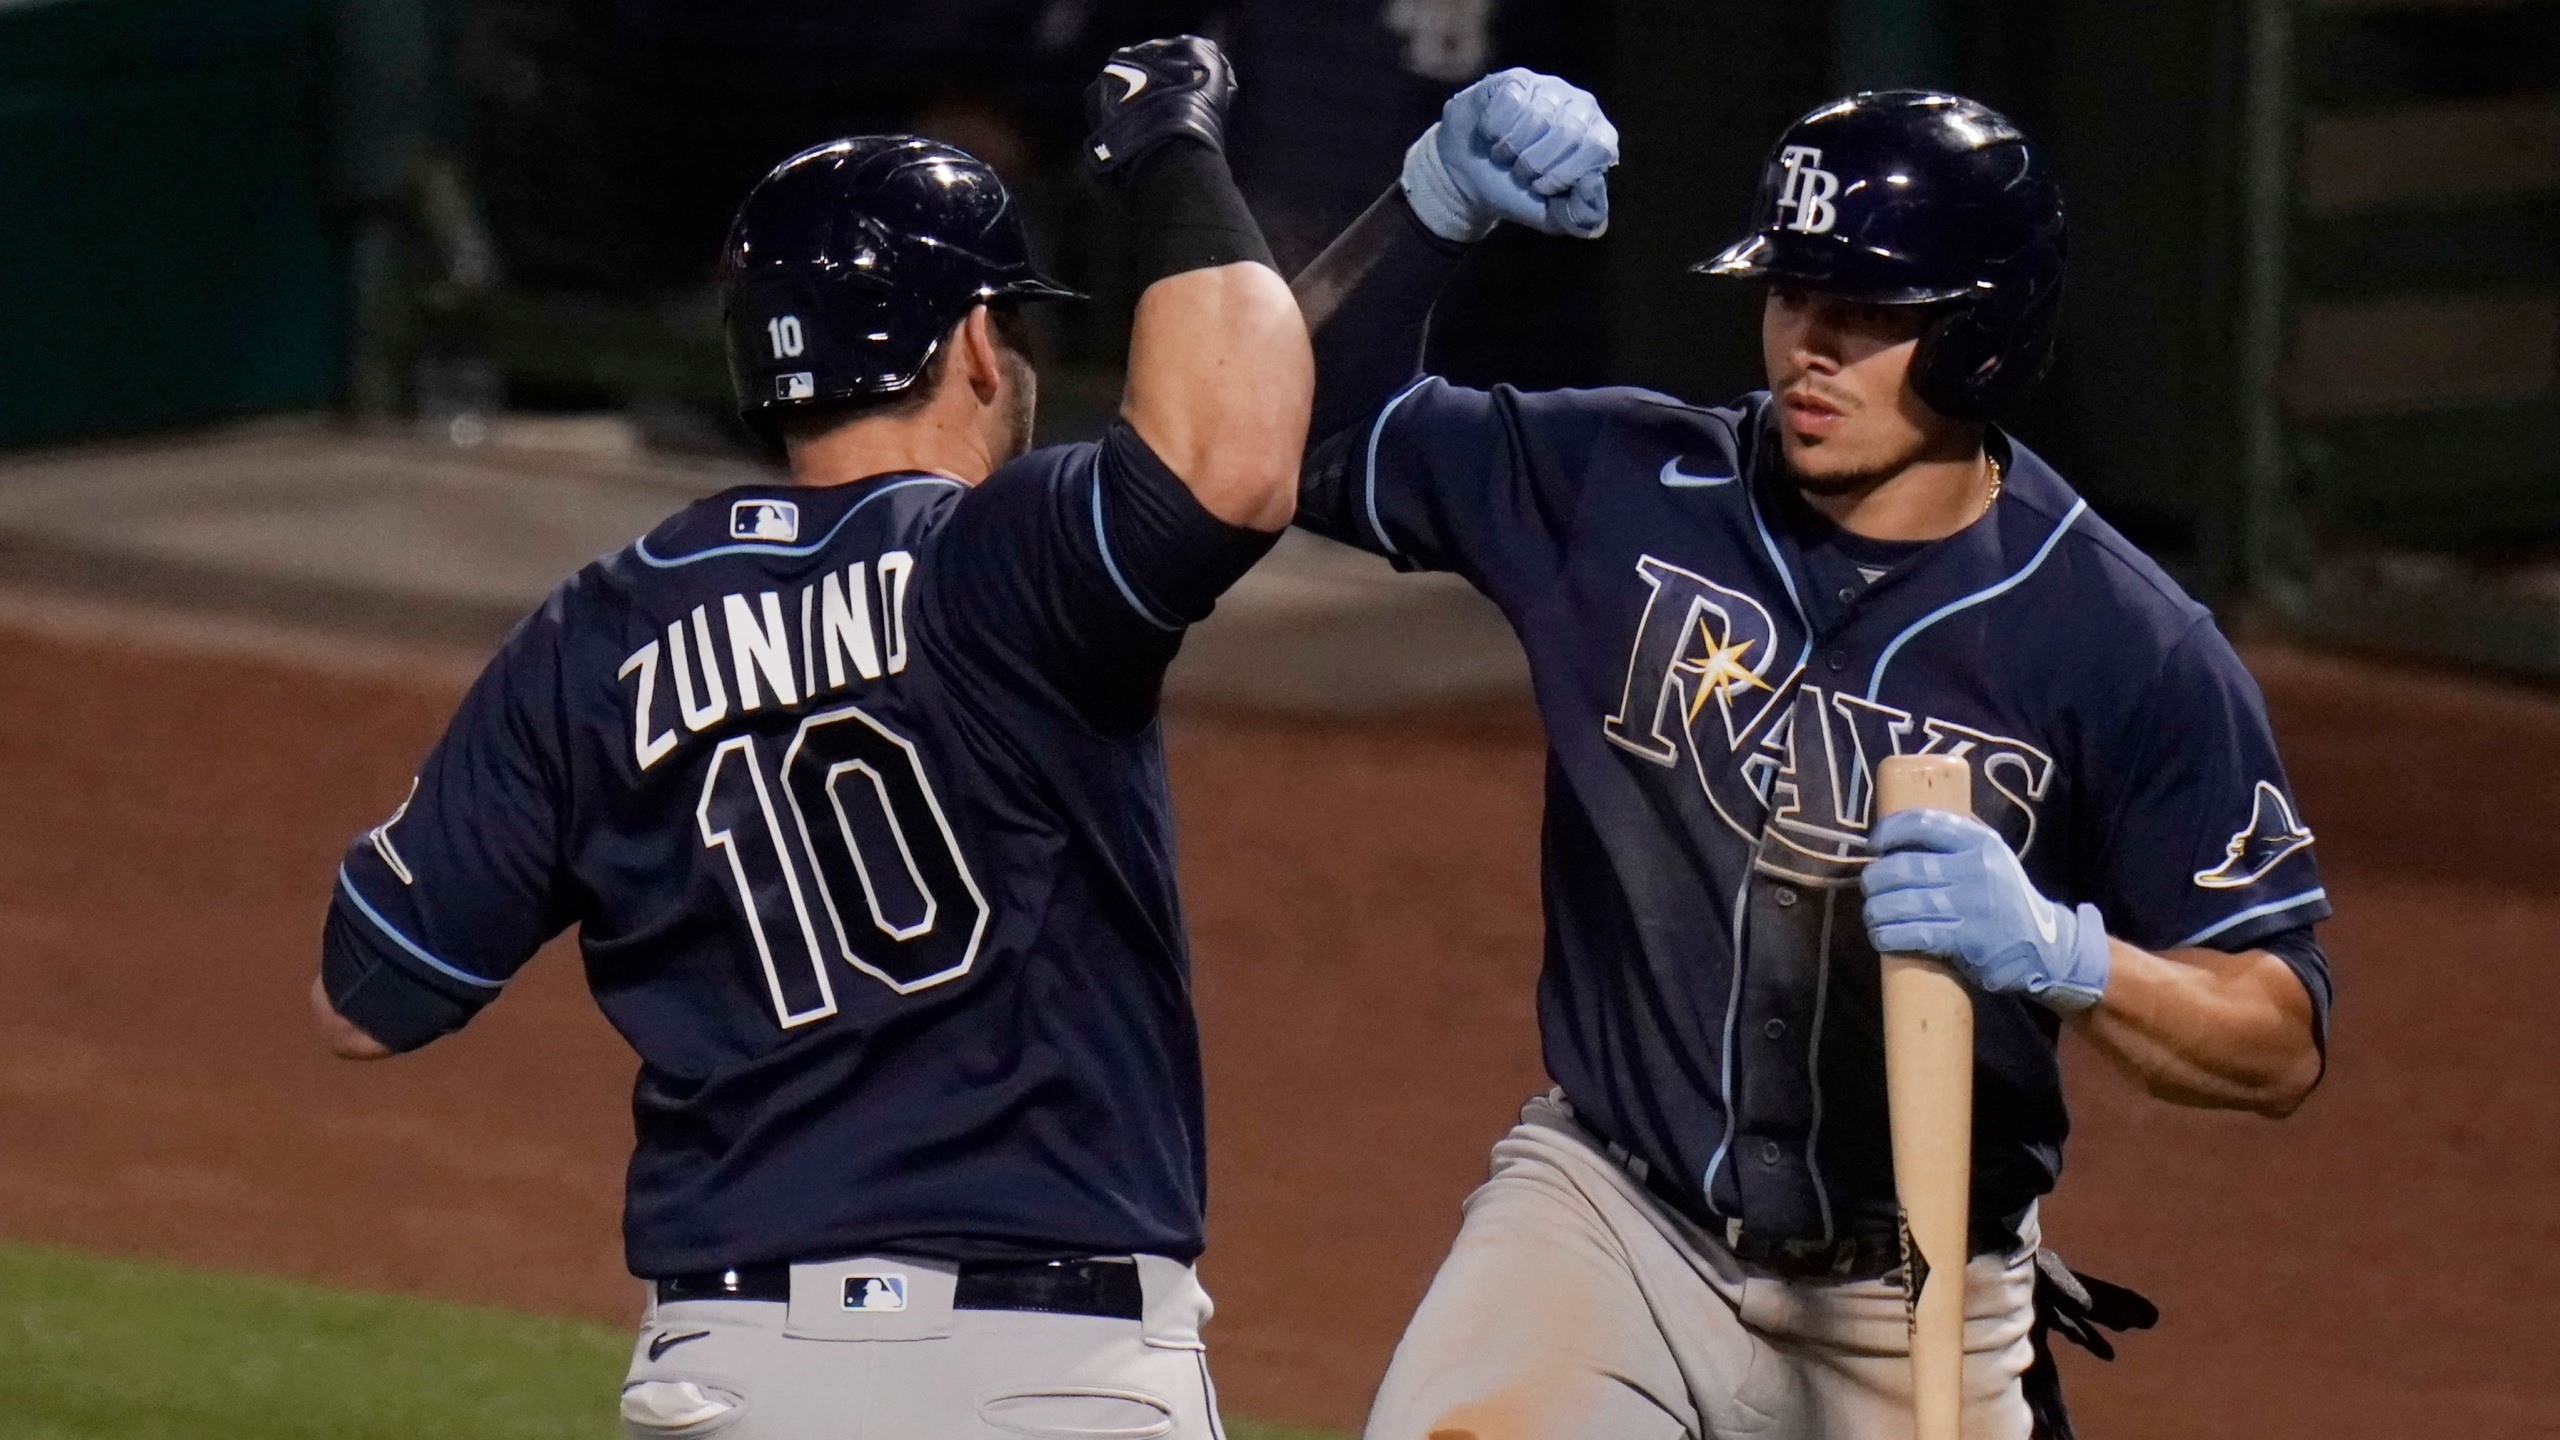 Mike Zunino, Willy Adames